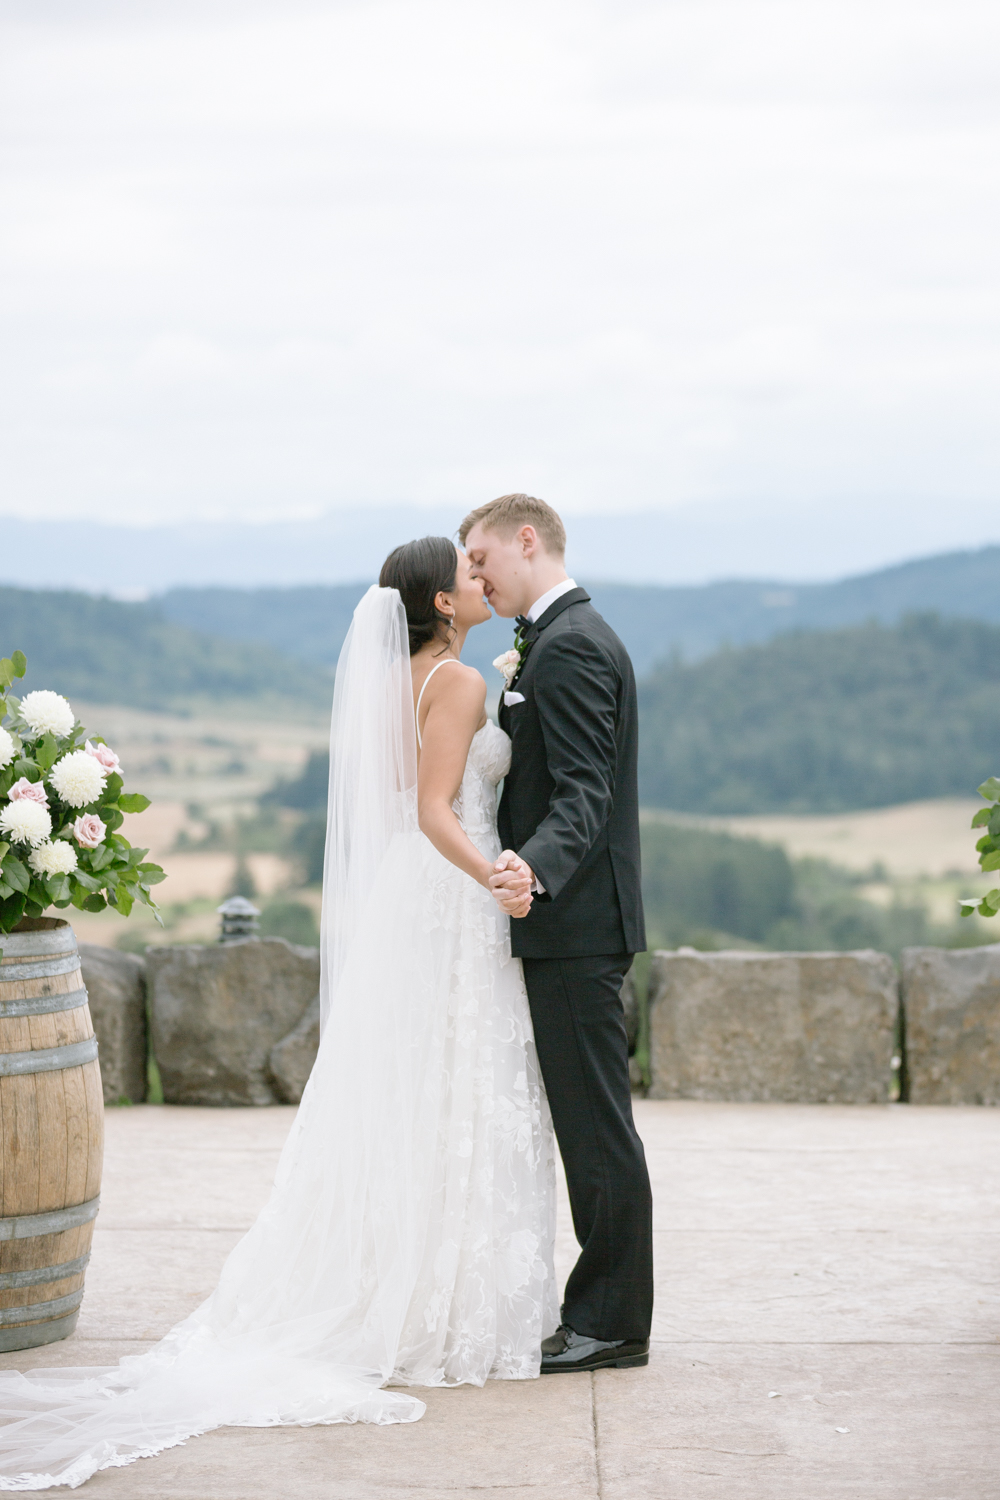 Youngberg Hill Vineyard Wedding in Wine Country Oregon - Corrie Mick Photography-325.jpg